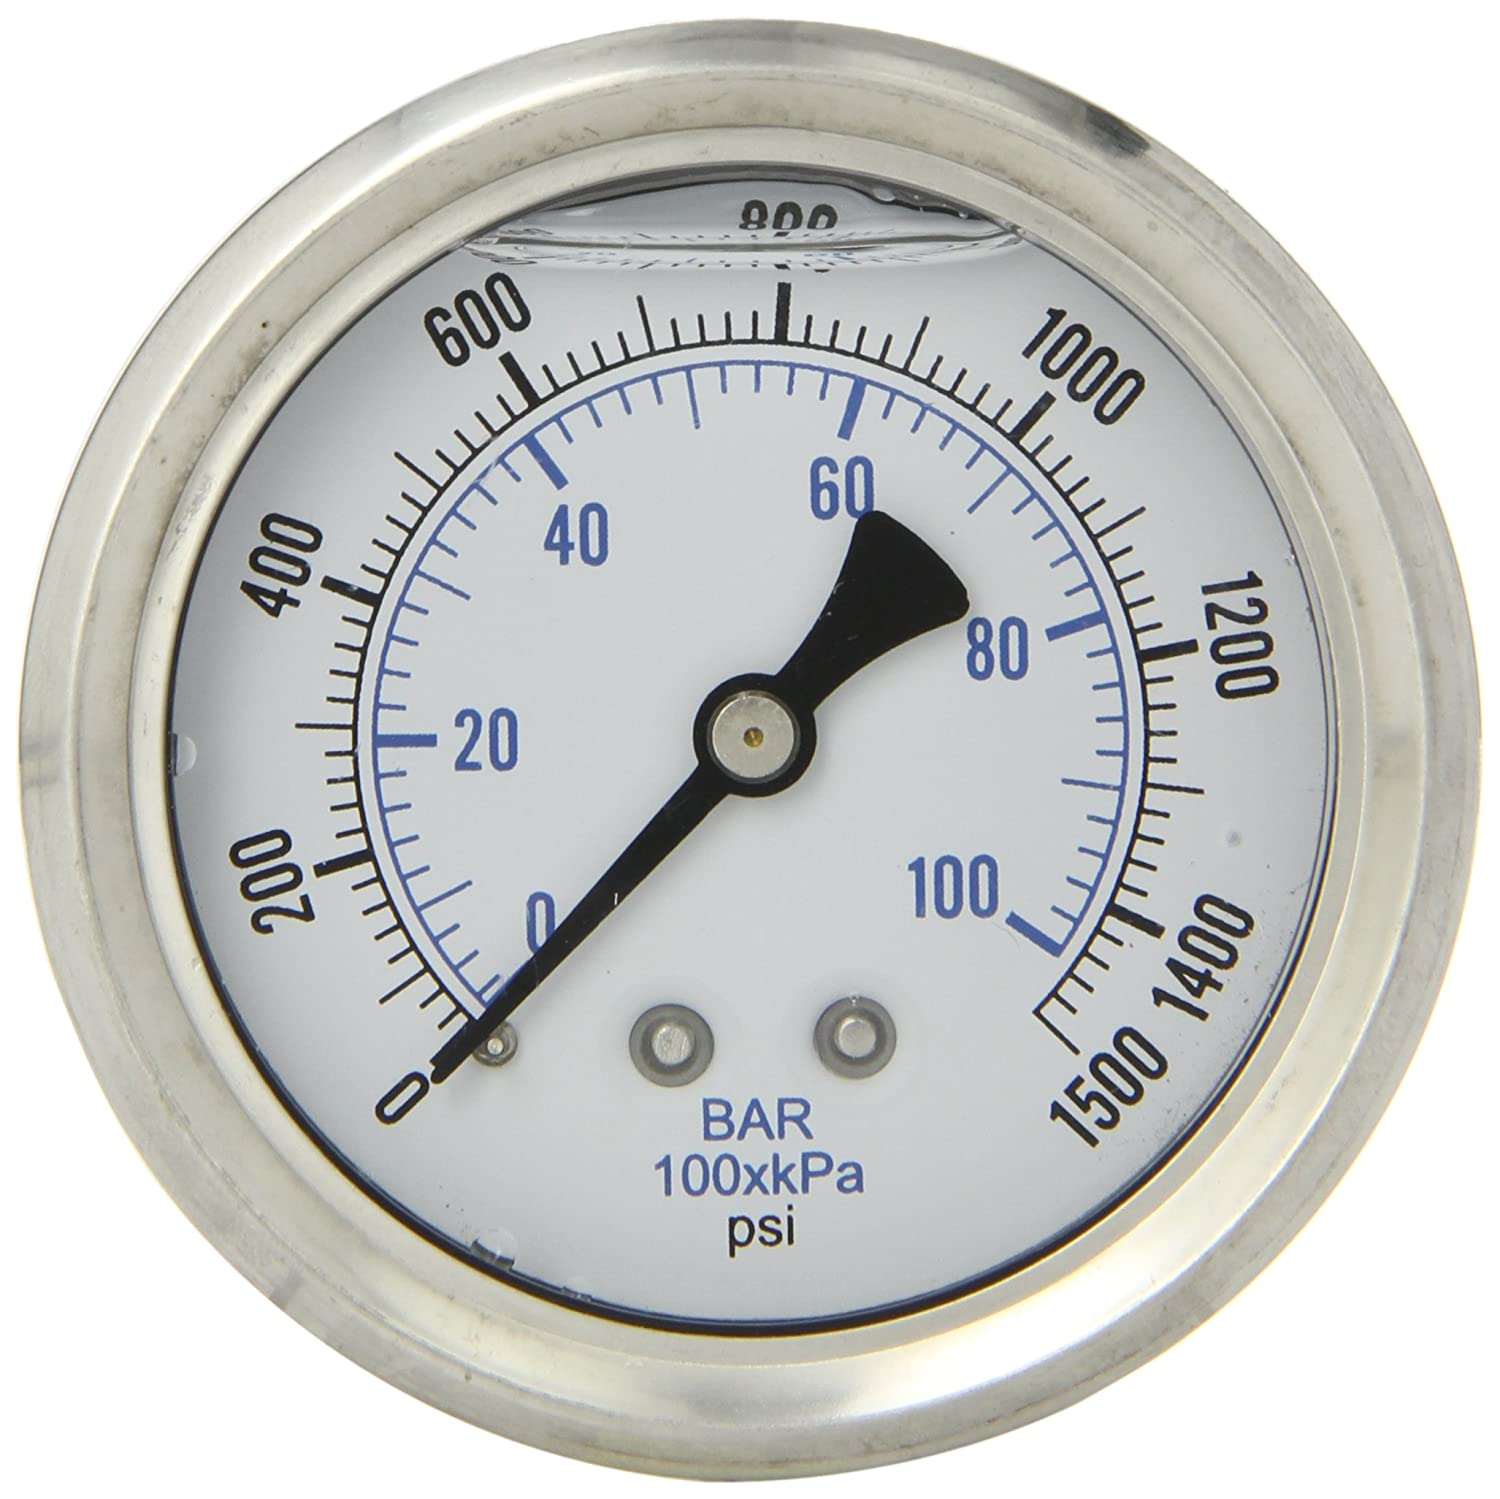 PIC Gauge PRO 202L 254N Glycerin Filled Industrial Center Back Mount Pressure Gauge with Stainless Steel Case Brass Internals Plastic Lens 2 1 2 Dial Size 1 4 Male NPT 0 1500 psi